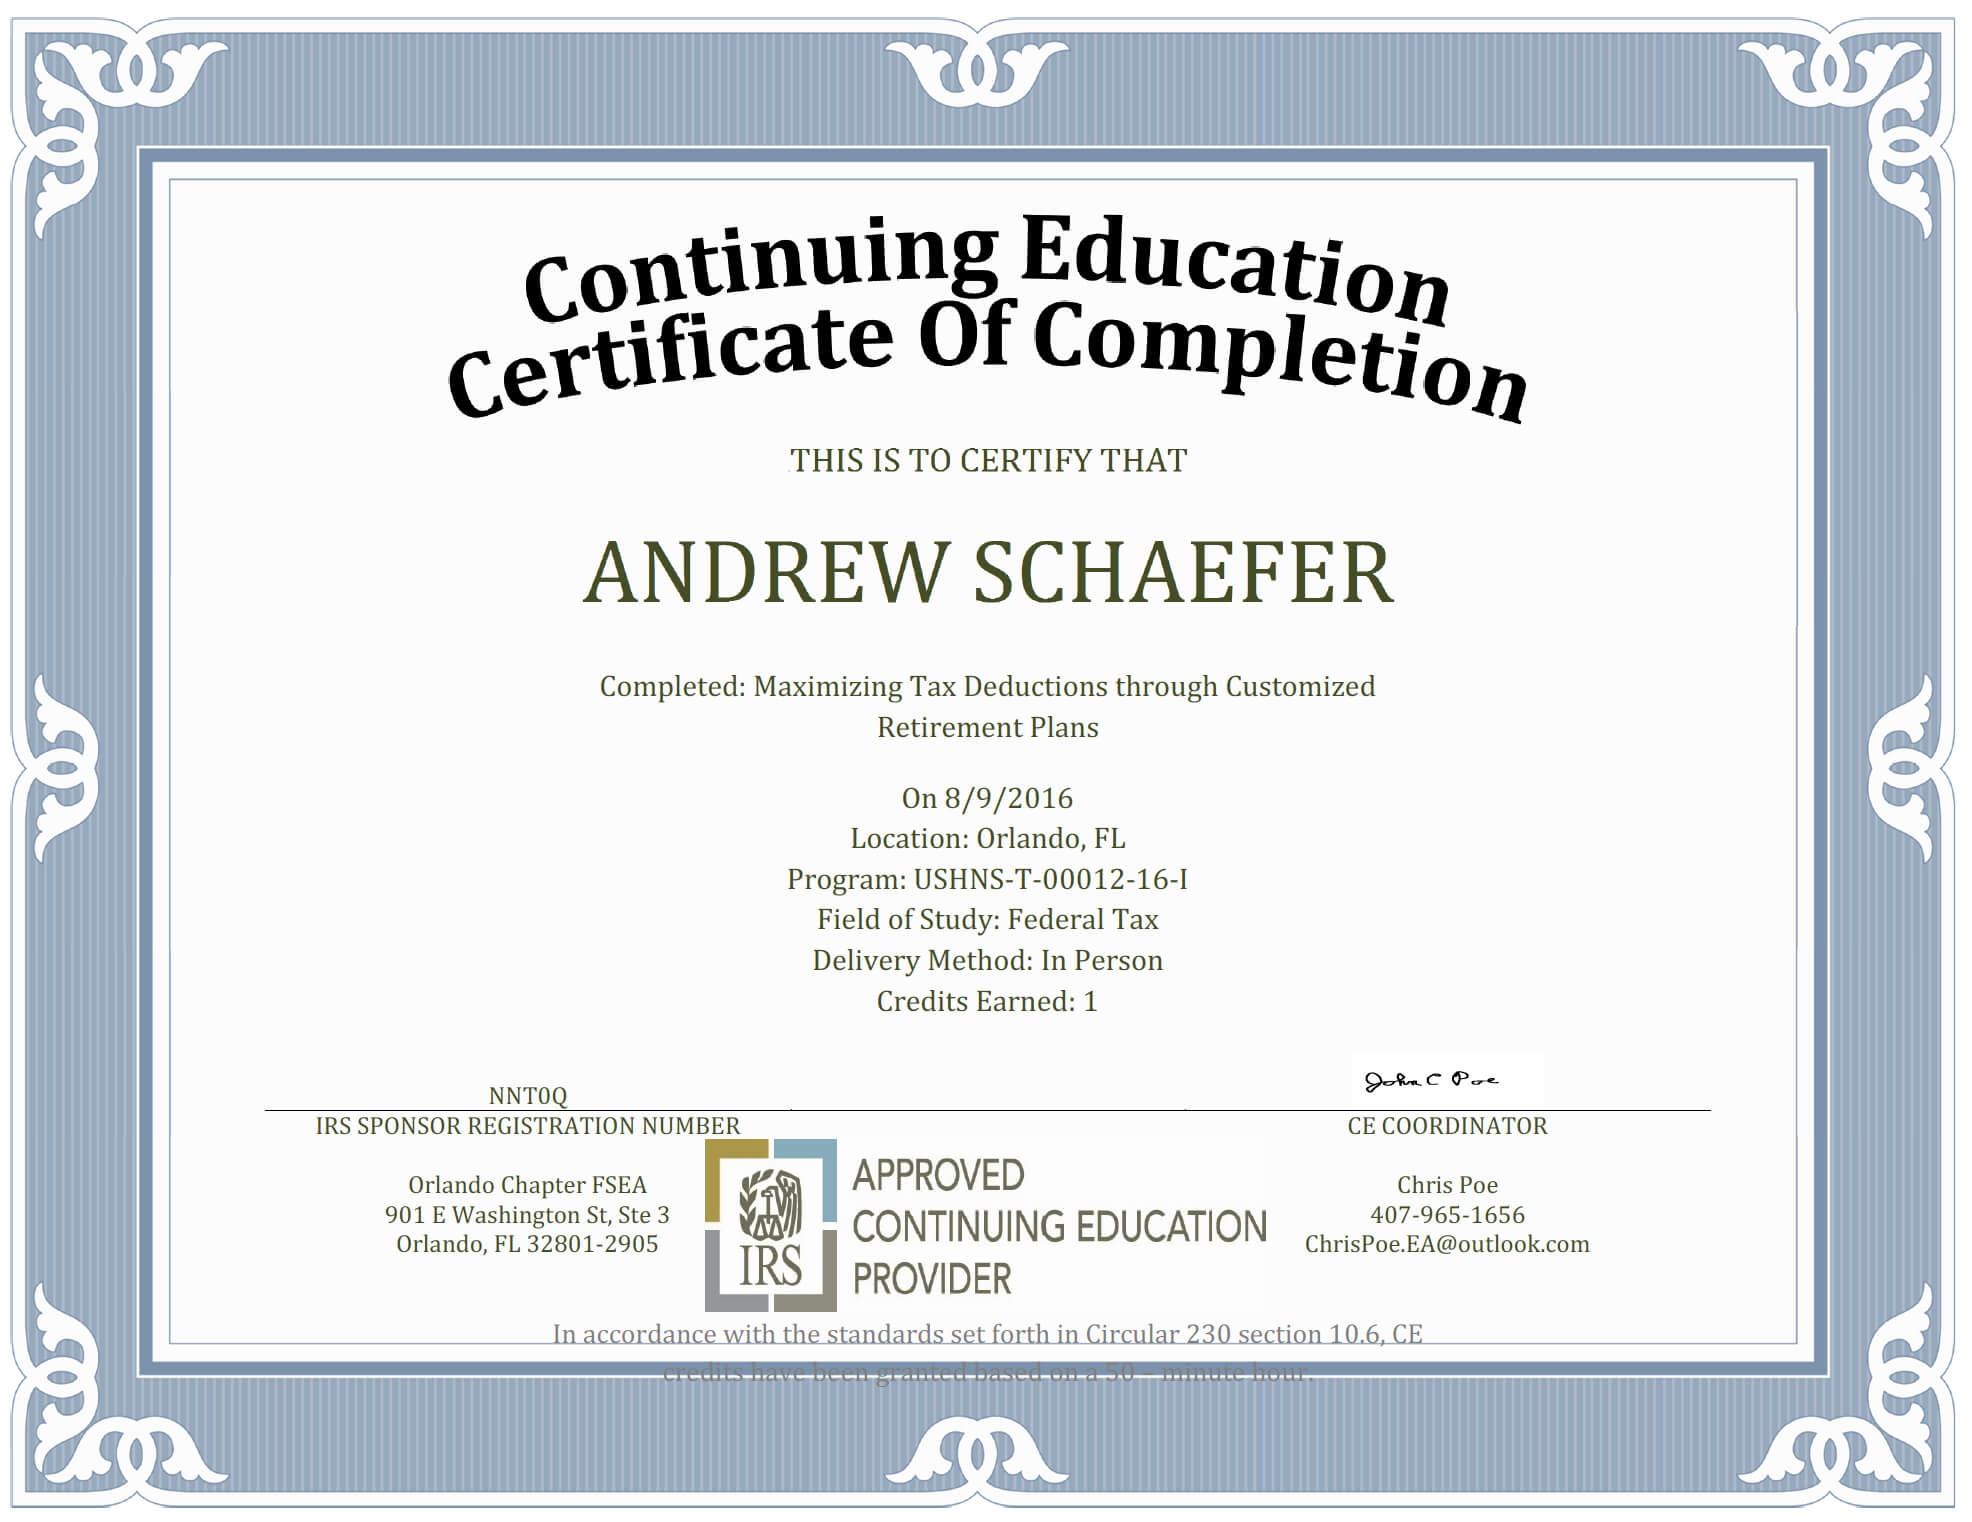 Ceu Certificate Of Completion Template Sample Regarding Ceu Certificate Template